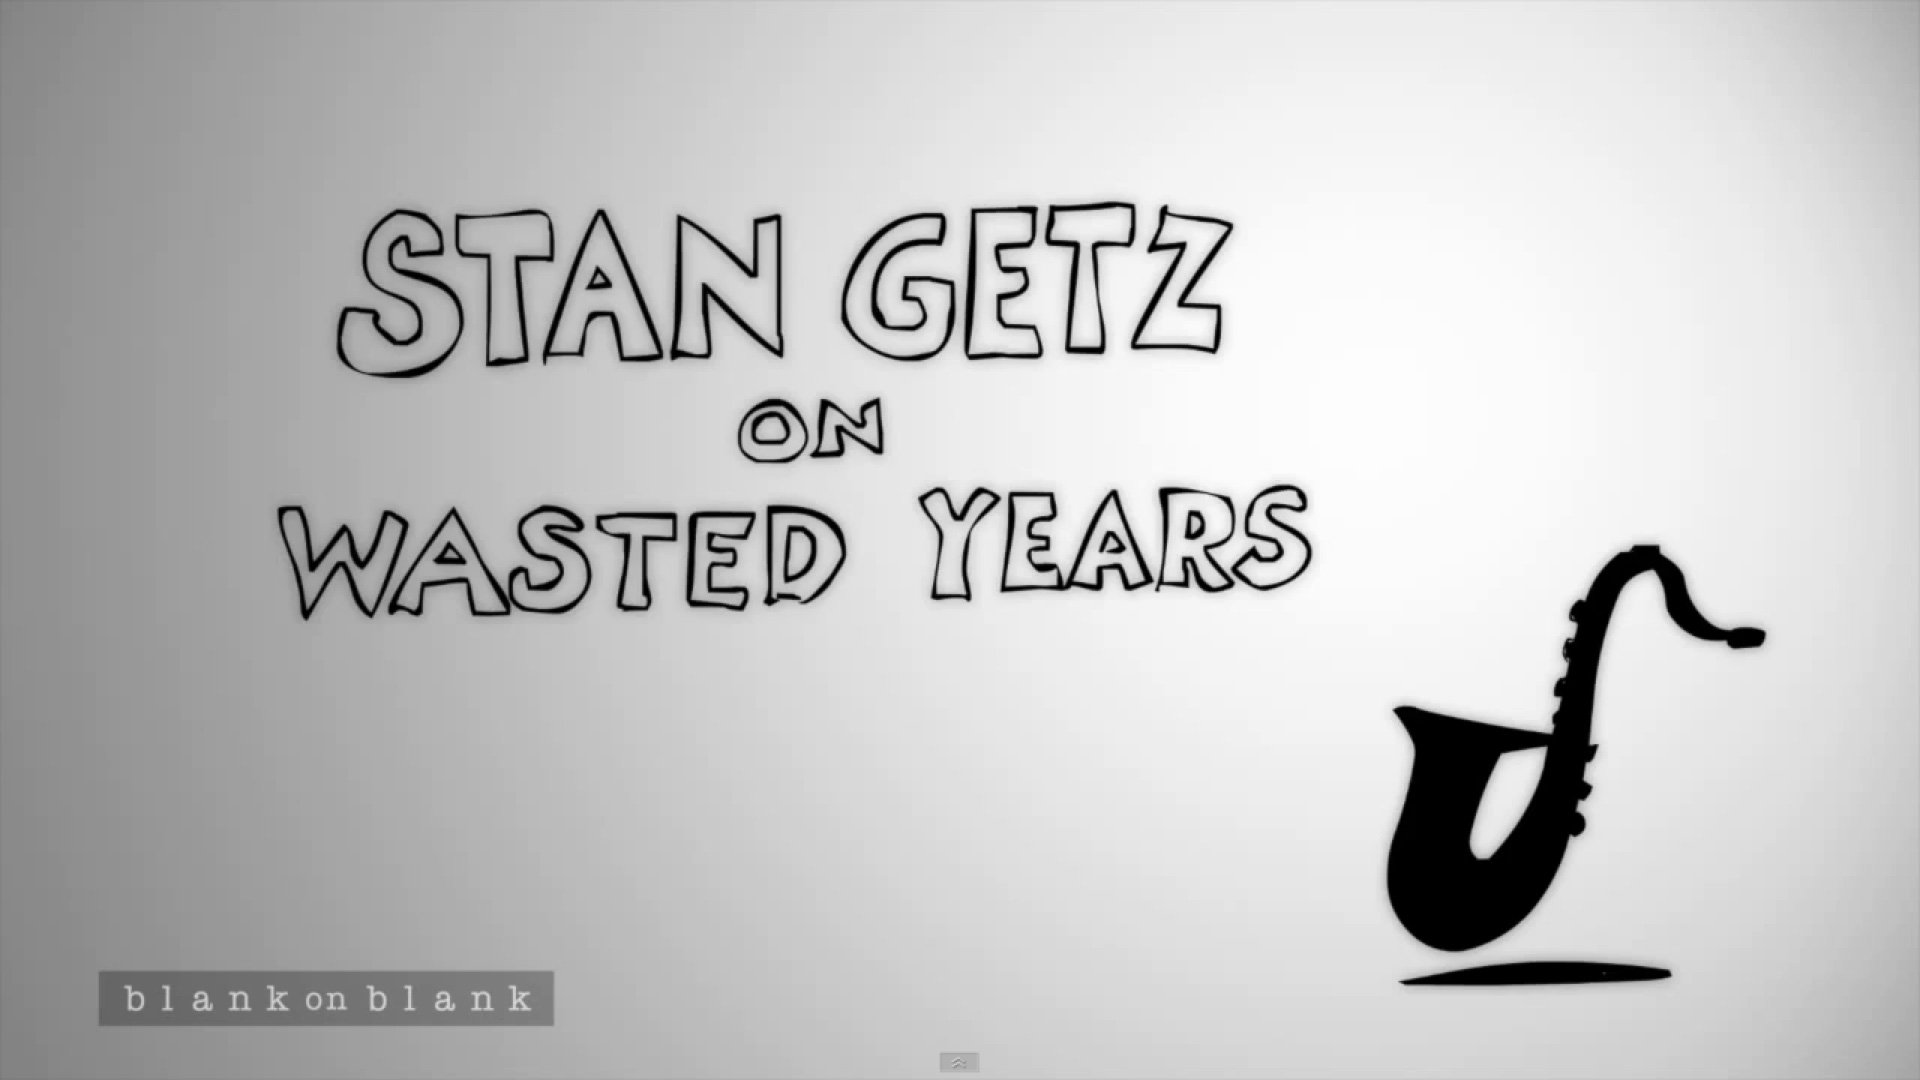 stan-getz-wasted-years-blank-on-blank-interview-youtube-video